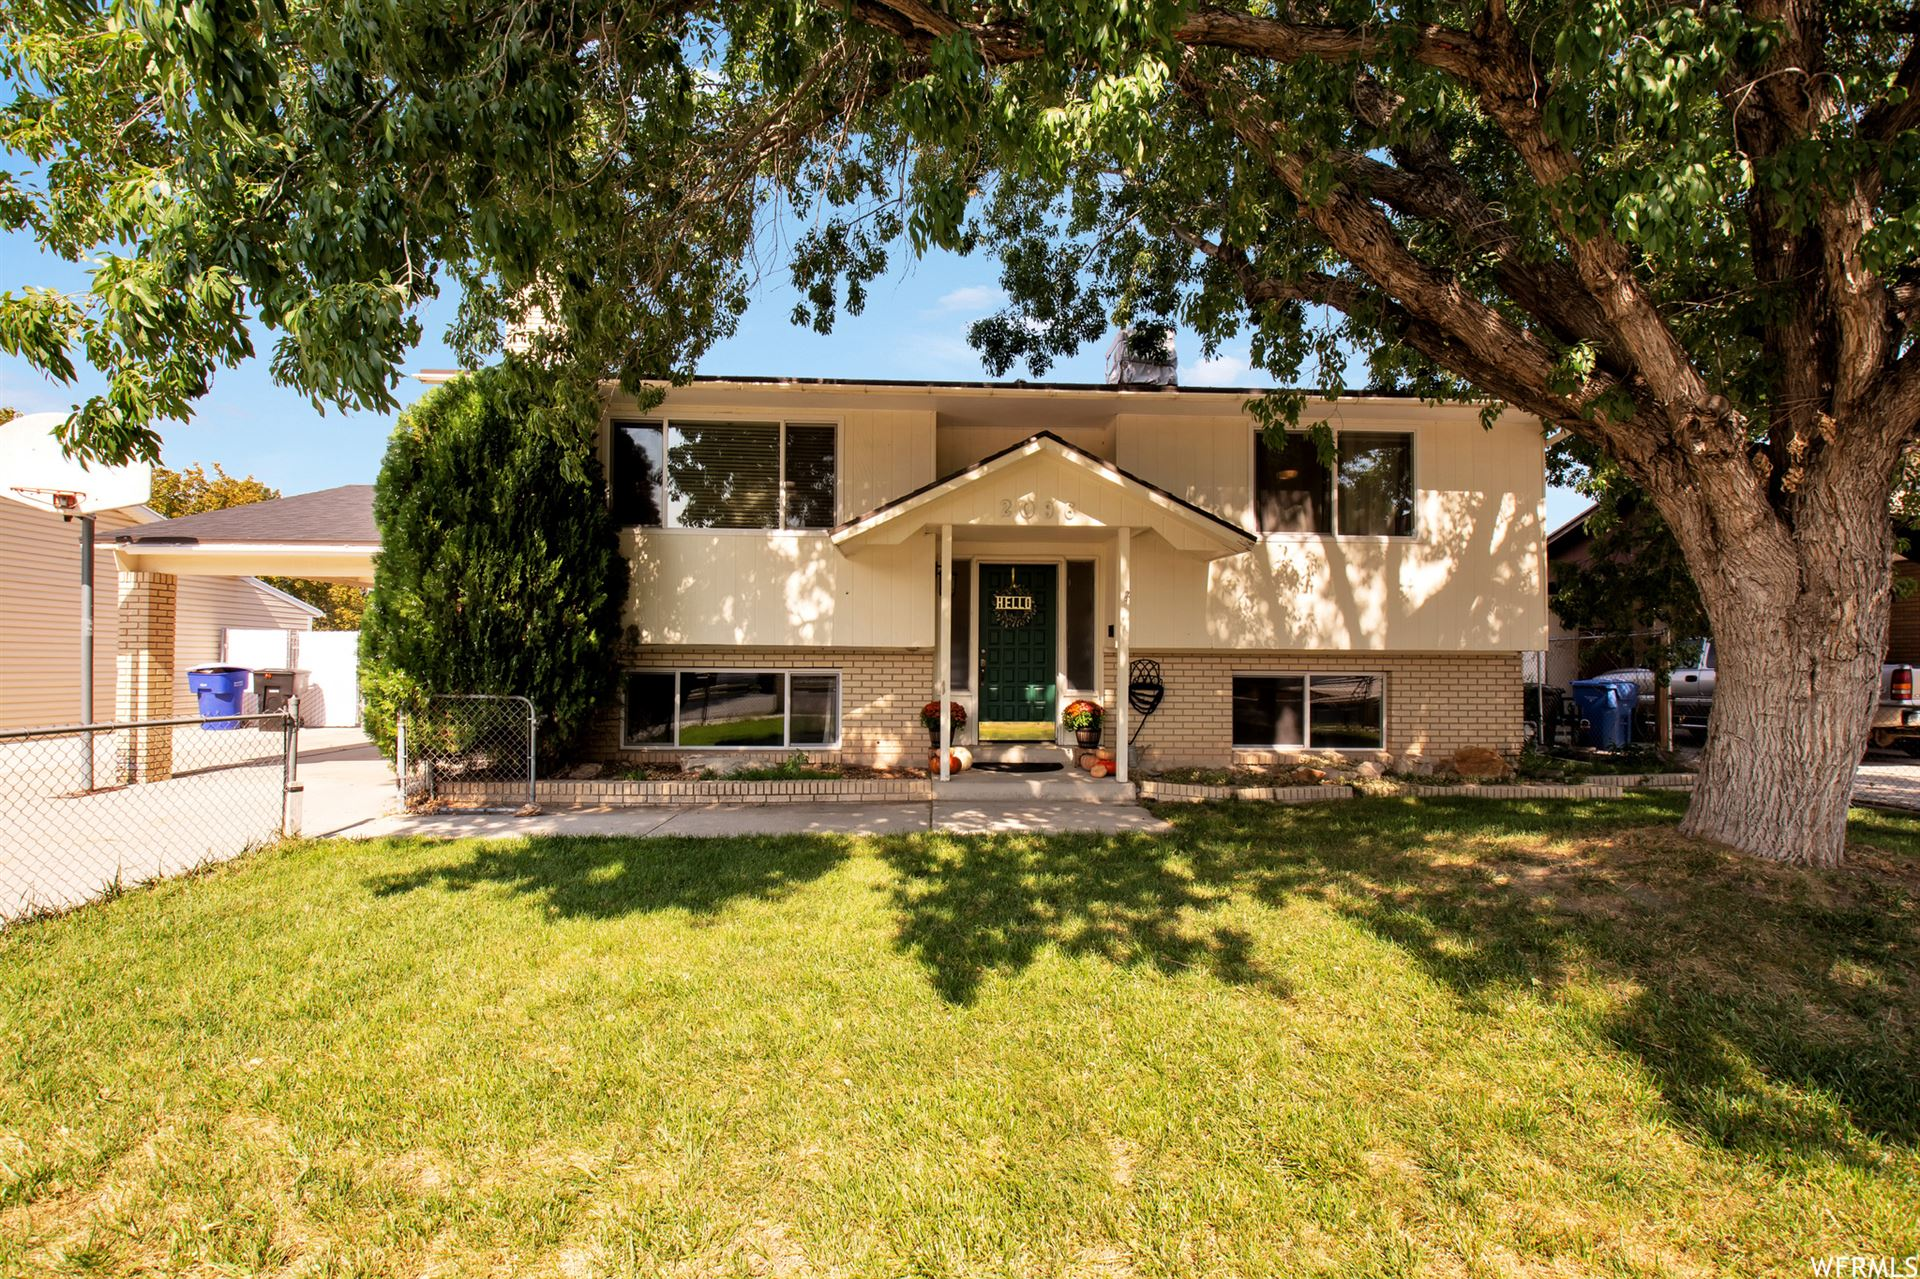 Photo of 2096 W HAPPINESS DR, Taylorsville, UT 84129 (MLS # 1770919)